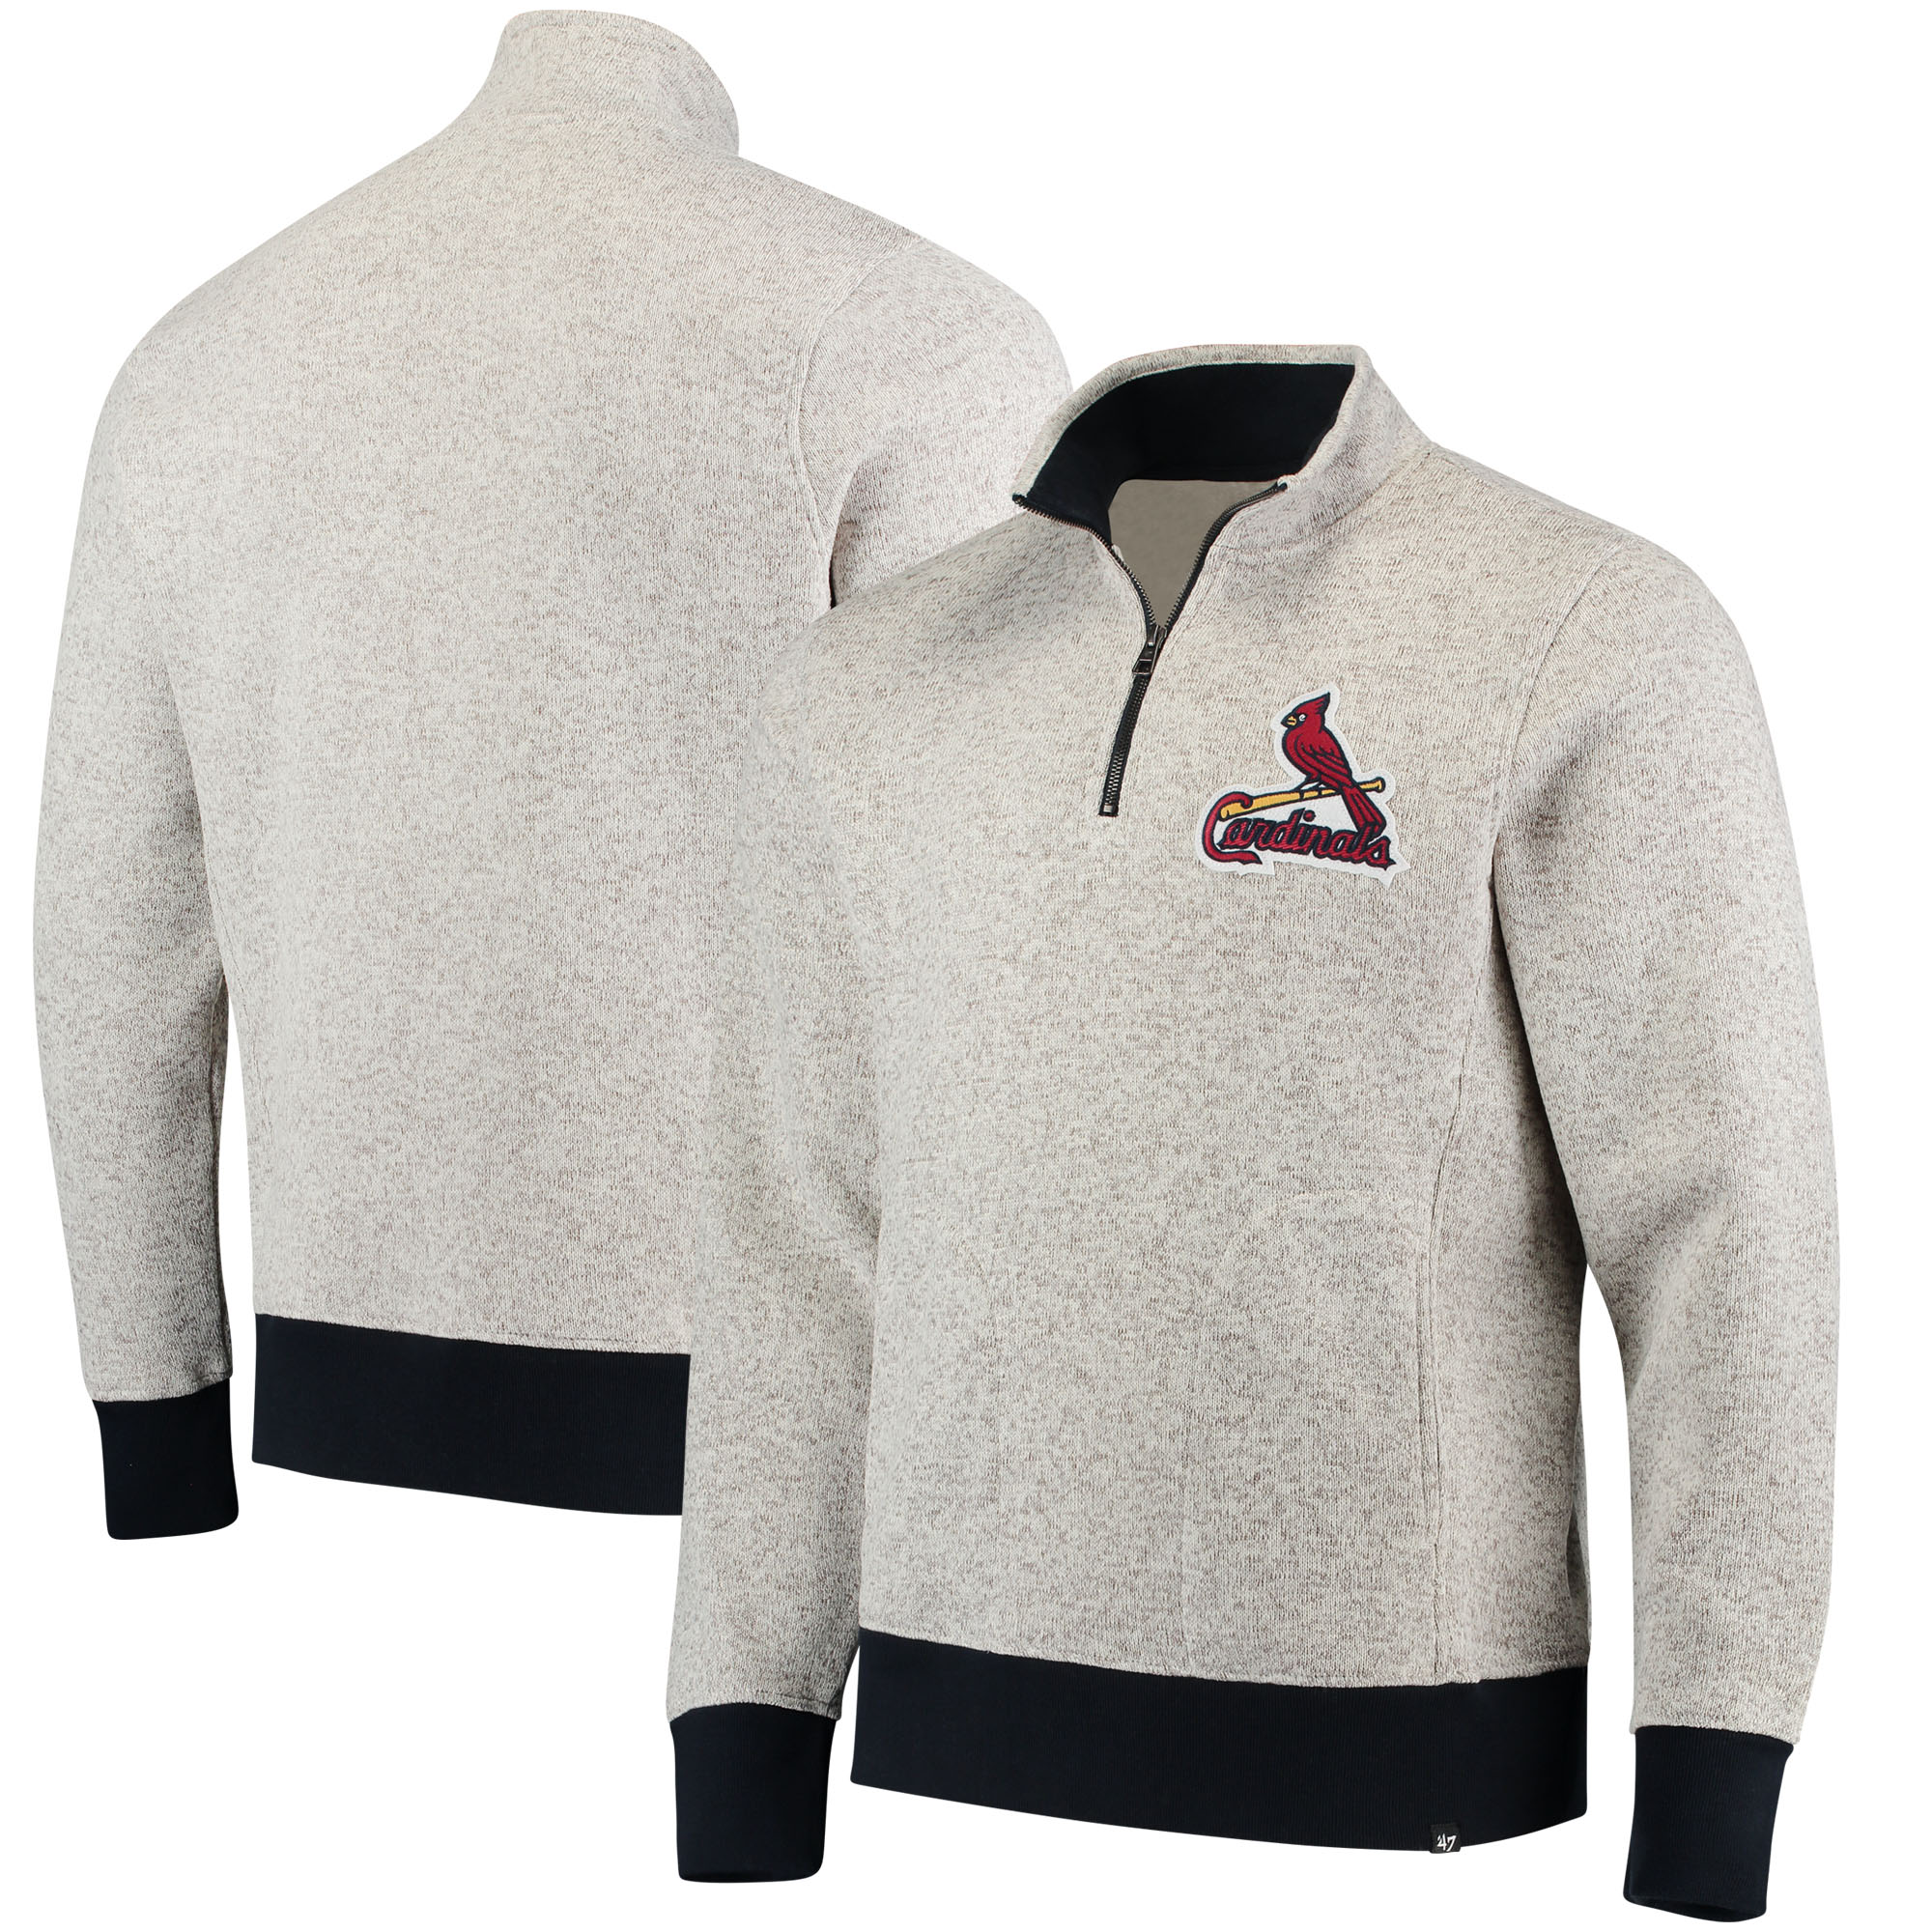 St. Louis Cardinals '47 Kodiak Quarter-Zip Pullover Jacket - Cream